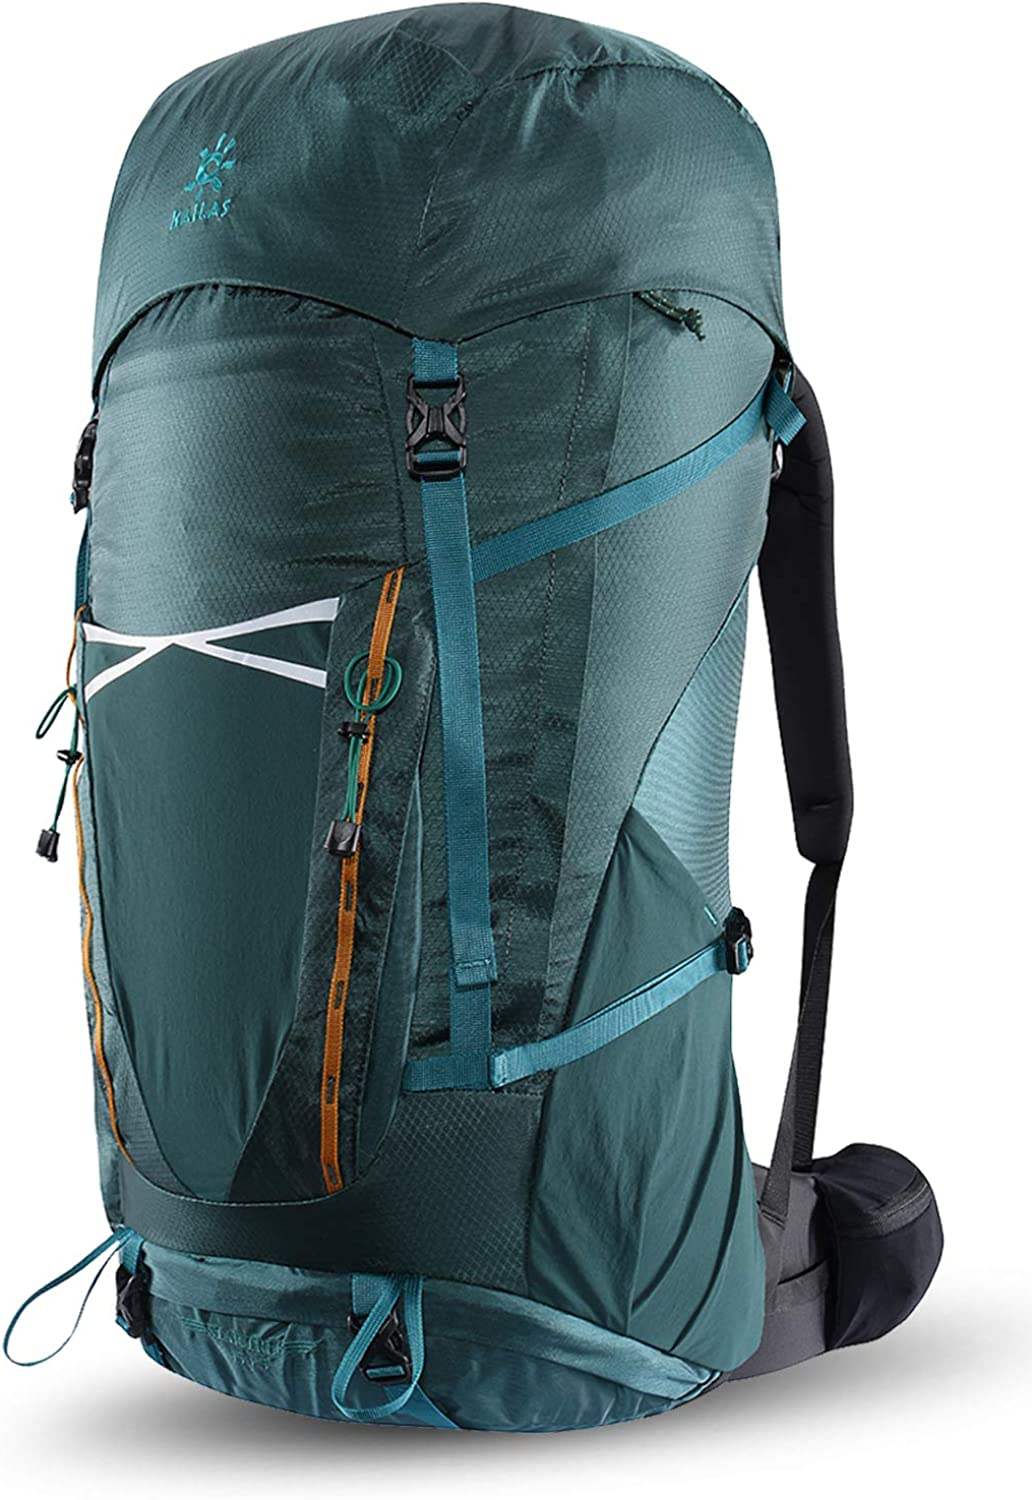 KAILAS Star Trek 45 5L Internal Frame Hiking Backpack Water Resistant Travel Daypack with Rain Cover for Outdoor Camping Trekking Climbing